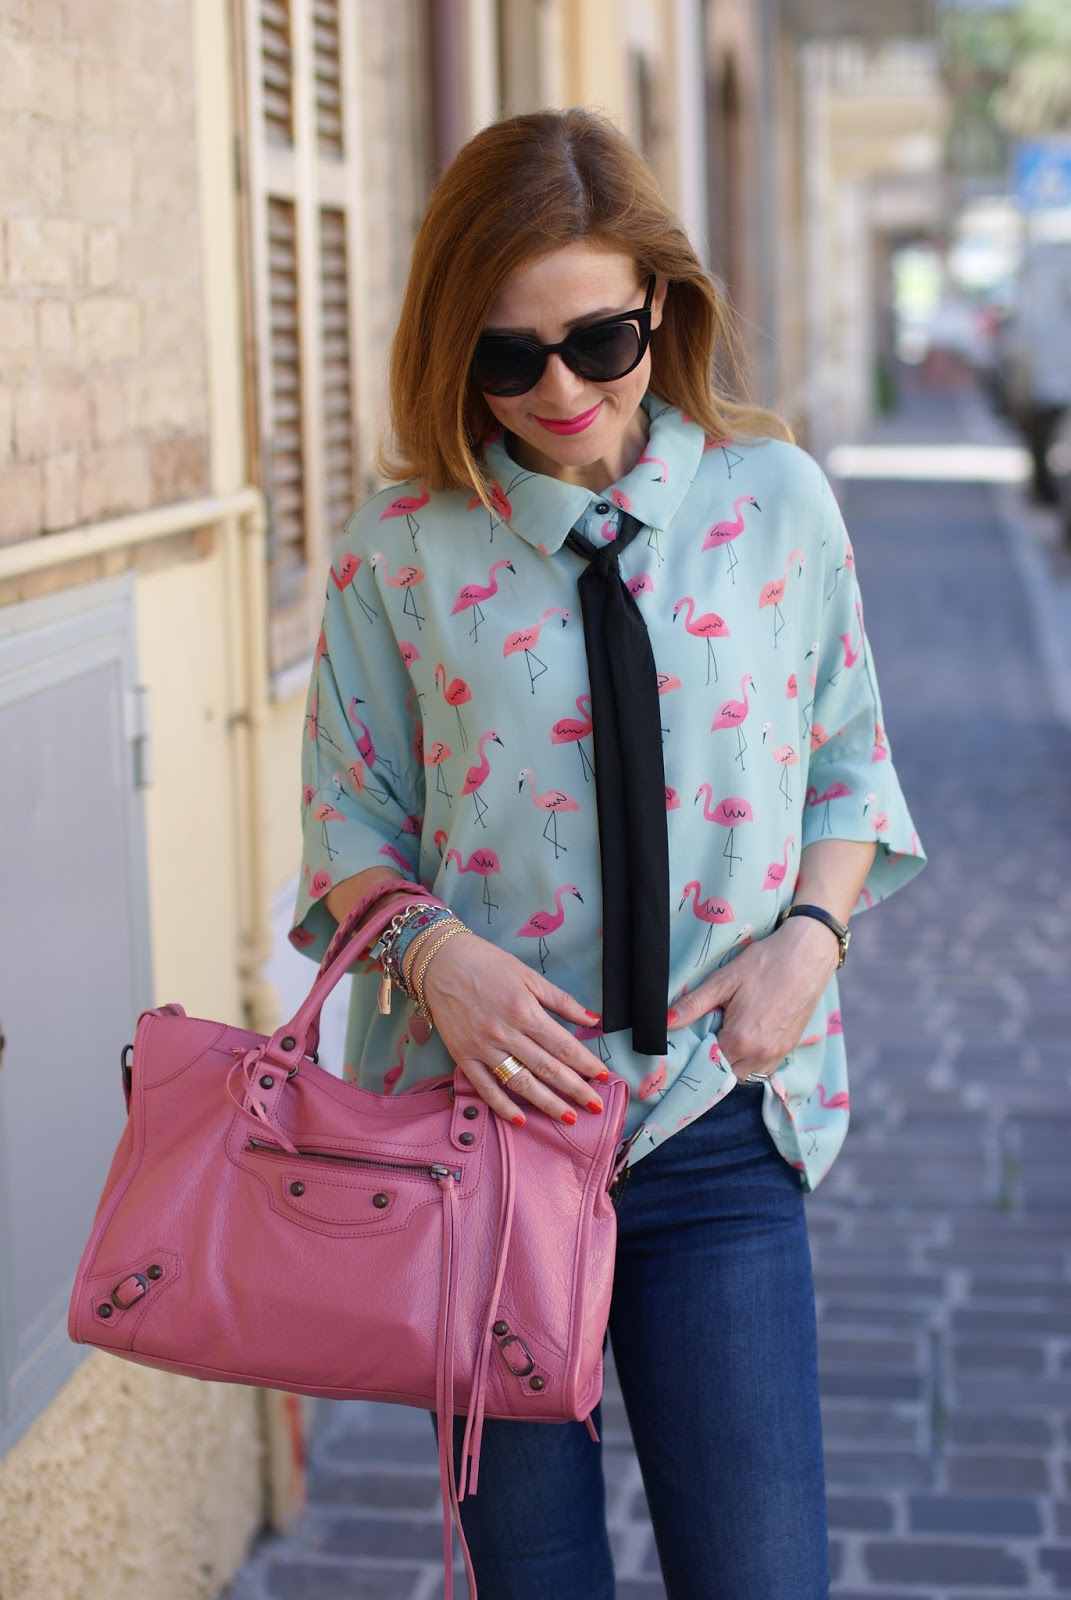 Flamingo print shirt with a bow tie on Fashion and Cookies fashion blog, fashion blogger style